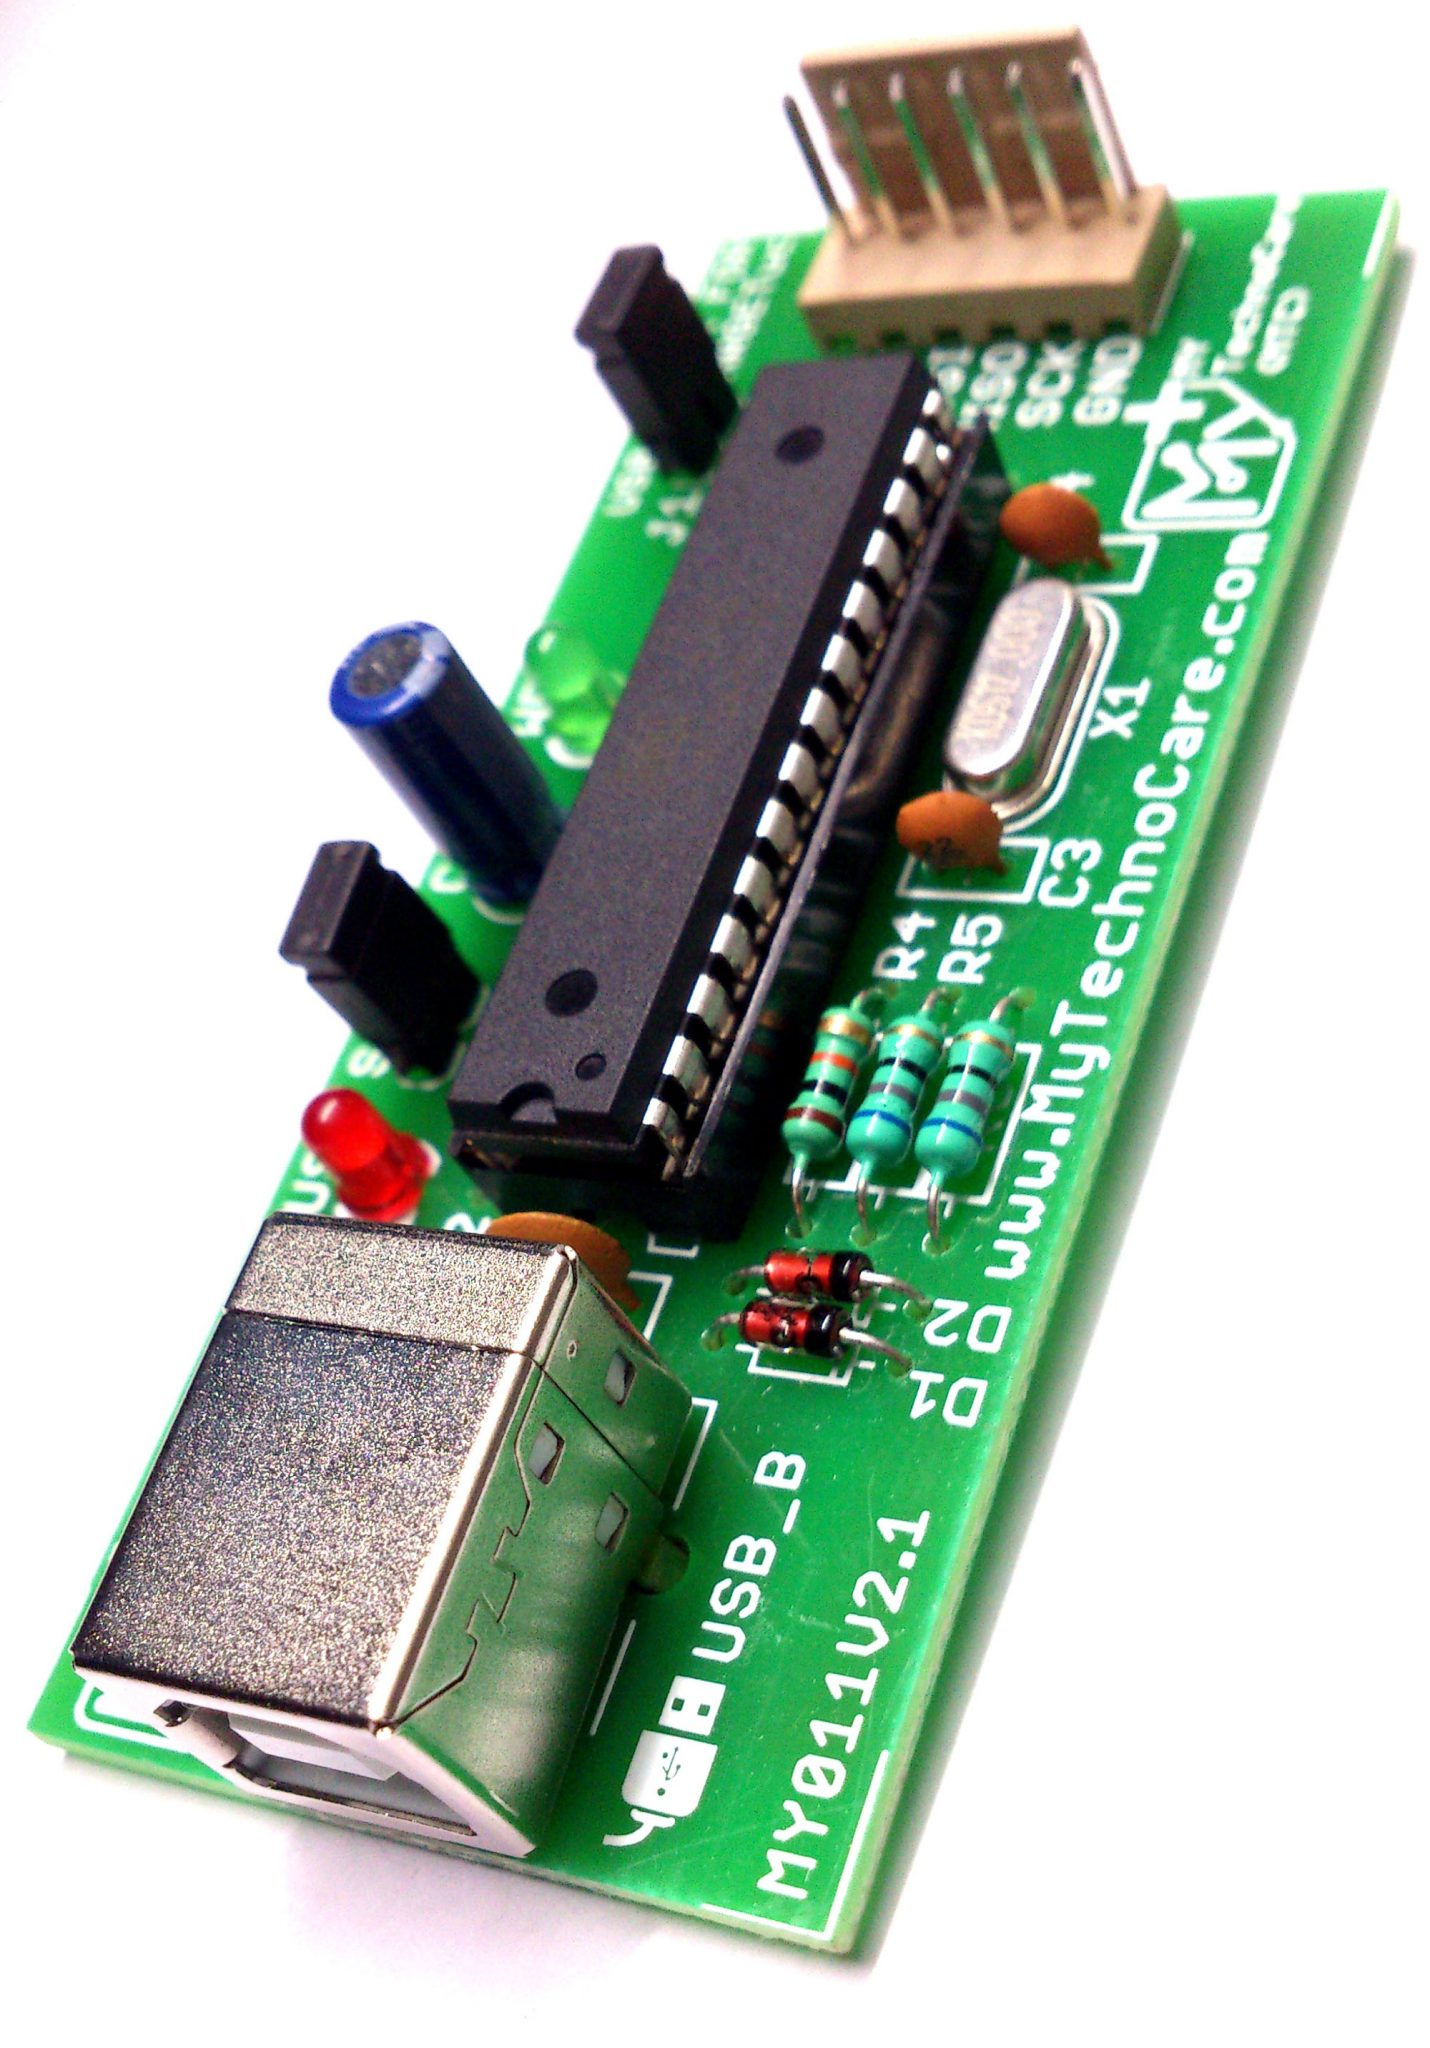 AVR 8051 USB ISP Programmer For Atmel AVR & 8051 Microcontroller